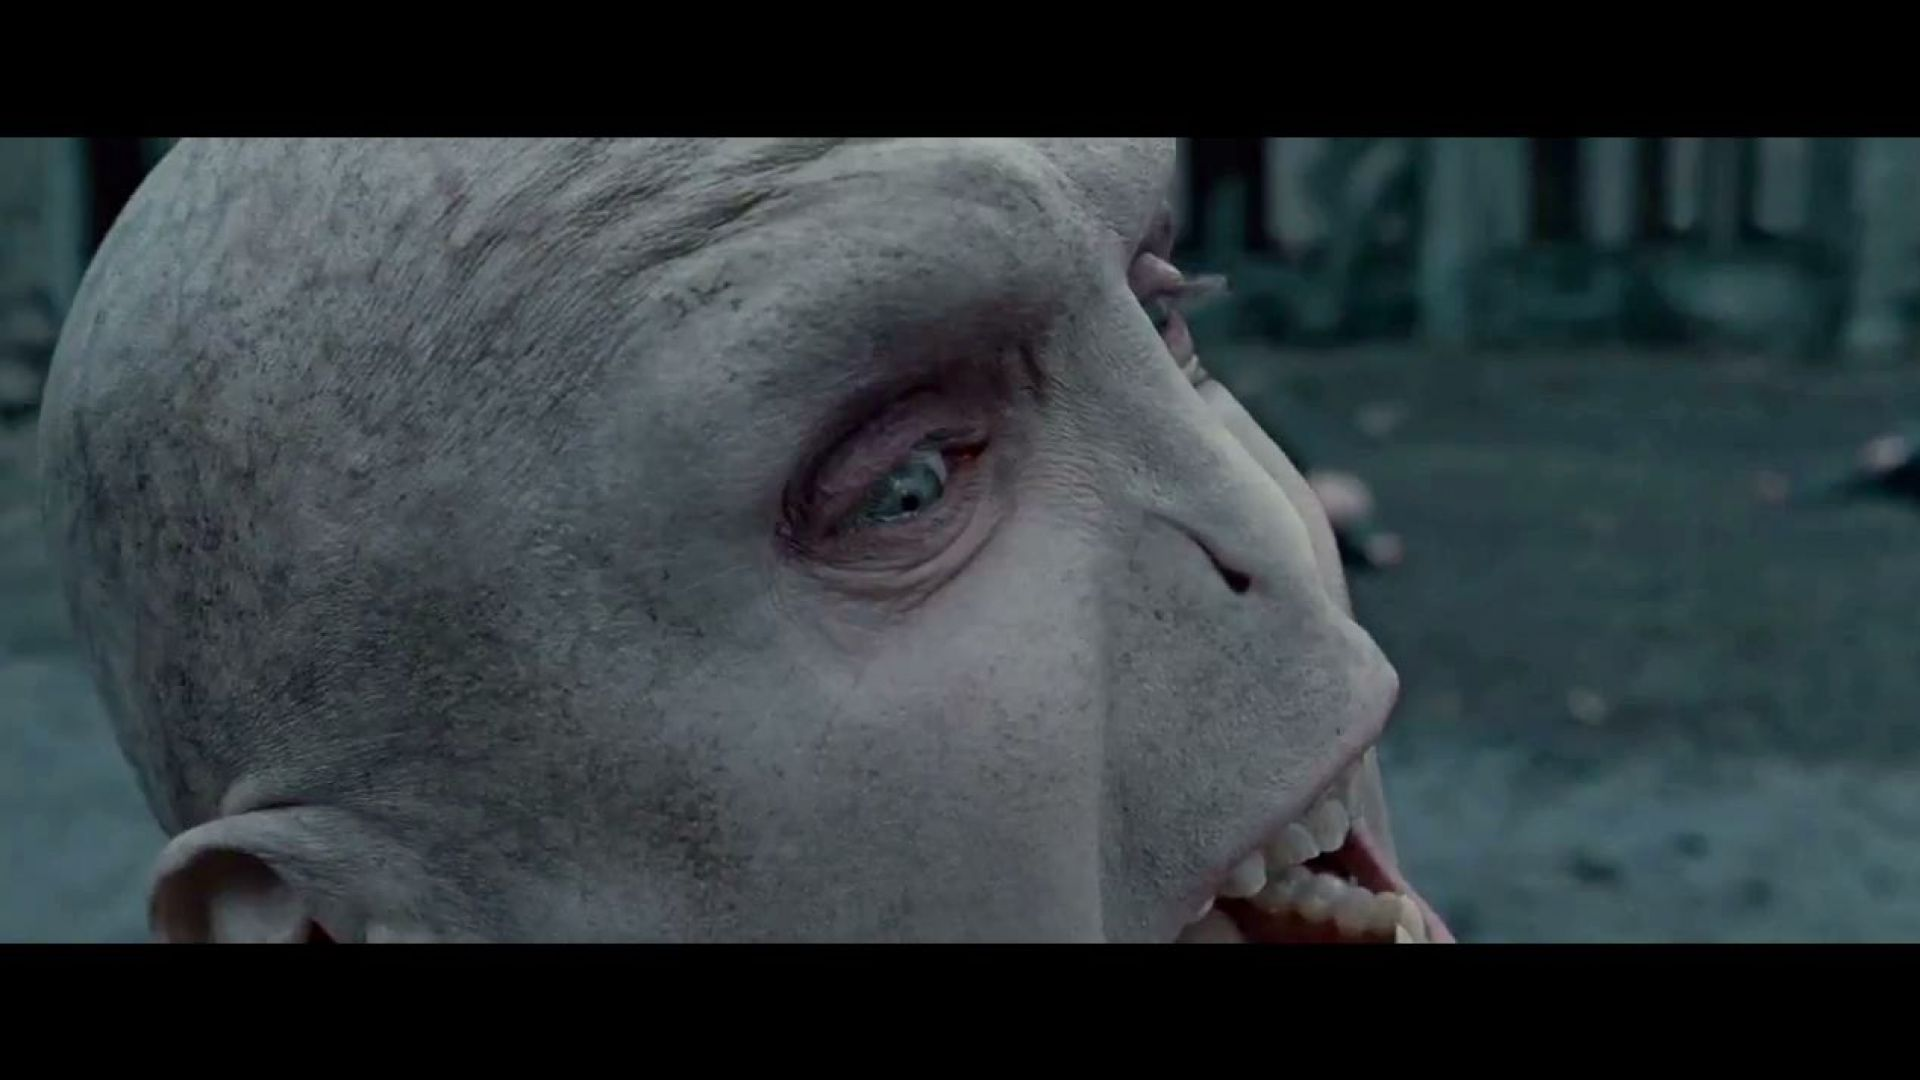 I never wanted any of you to die for me. Harry Potter 7 Part 2